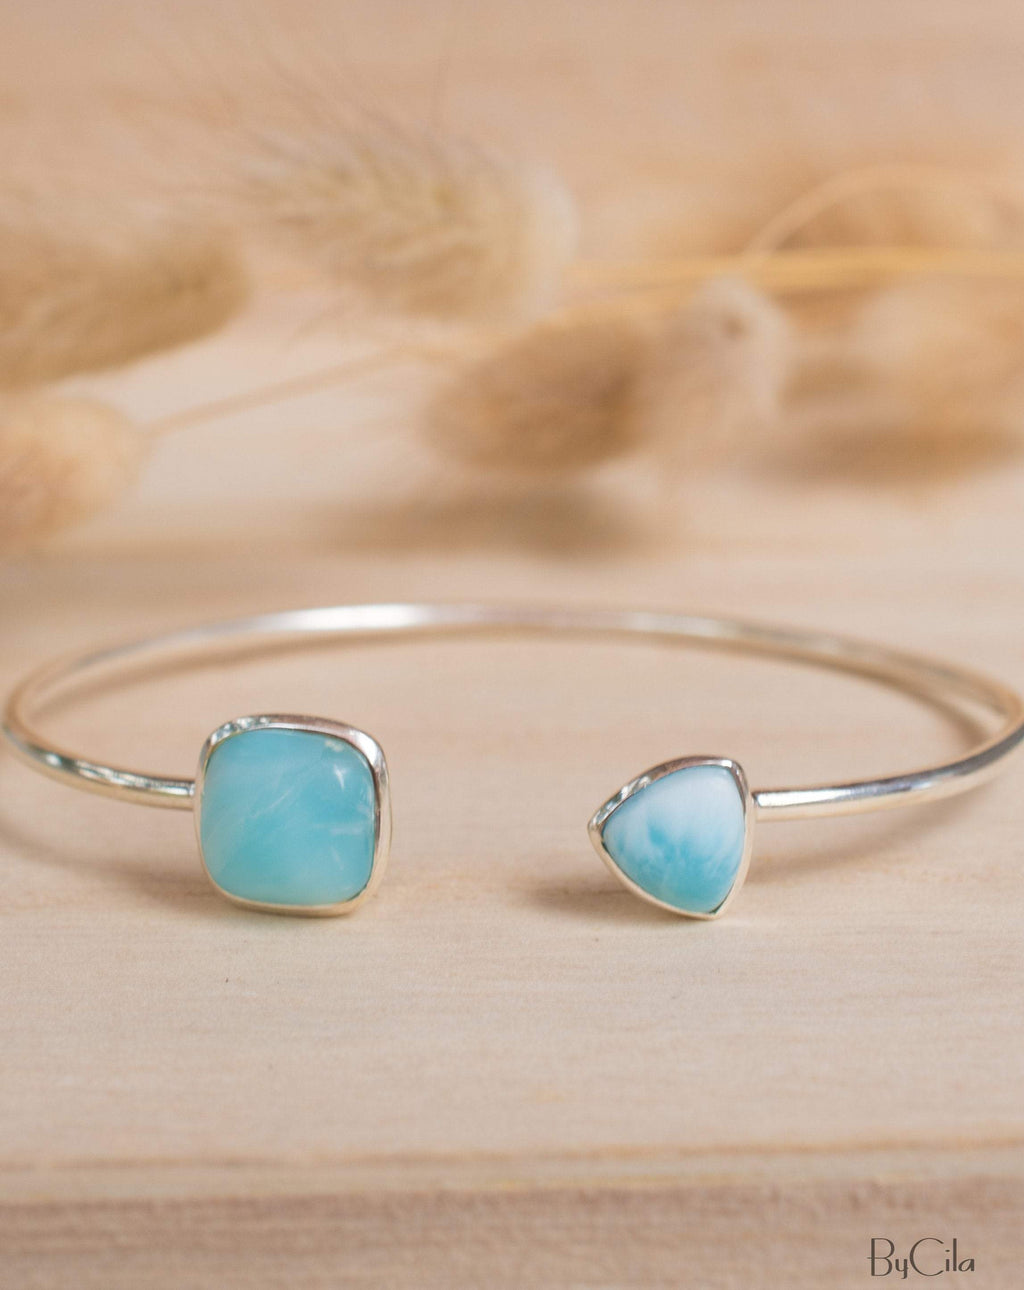 Larimar Bohemian Bangle Bracelet * Gold Plated 18k or Silver Plated * Gemstone * Gypsy * Hippie * Adjustable * Statement * Stacking *BJB005B